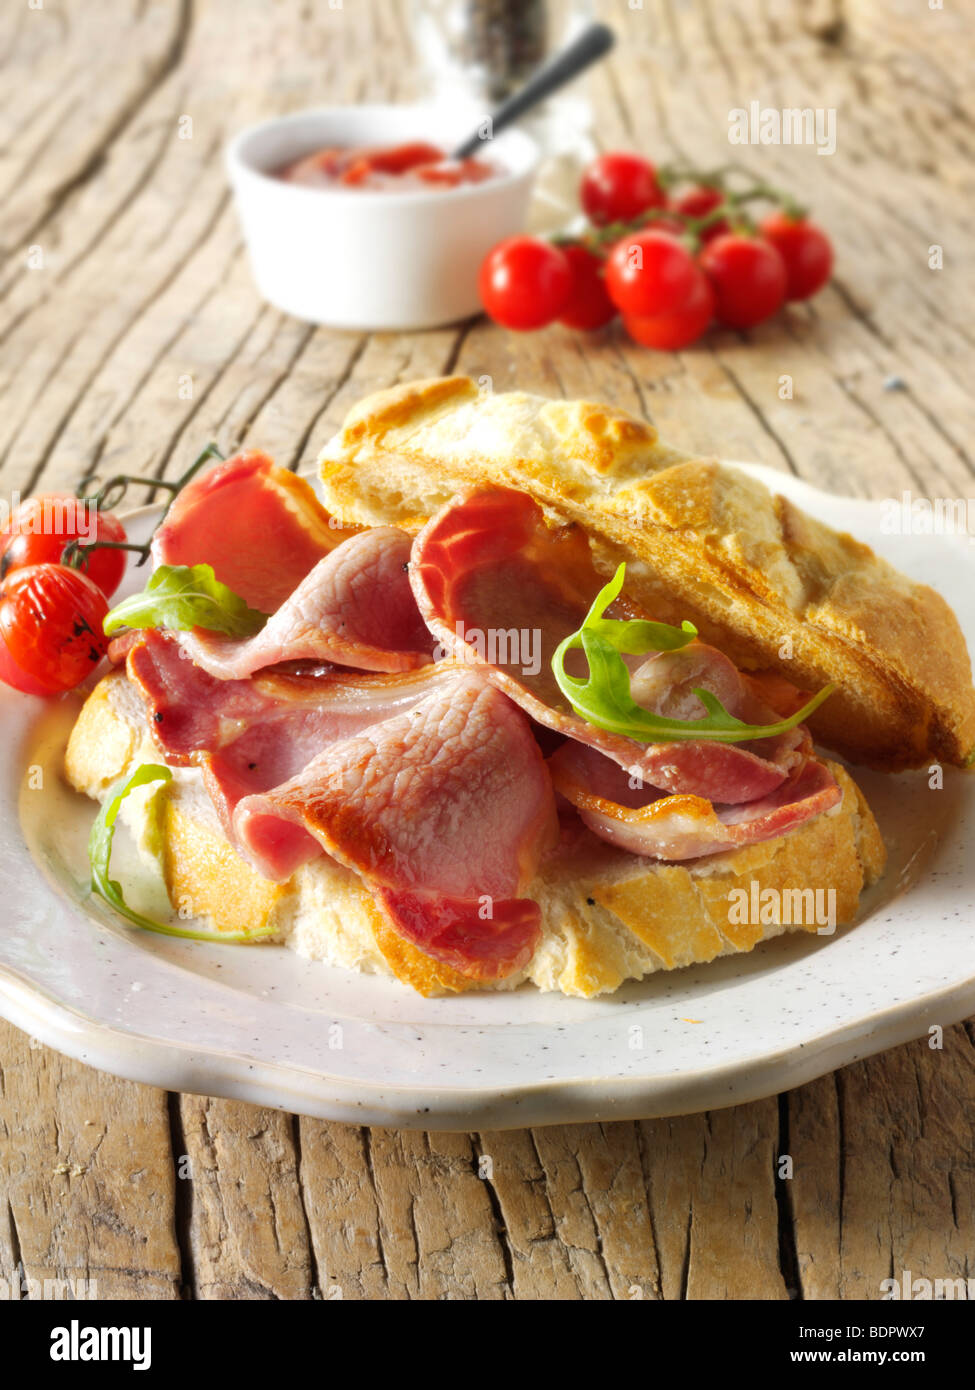 Traditional bacon sandwich - Stock Image